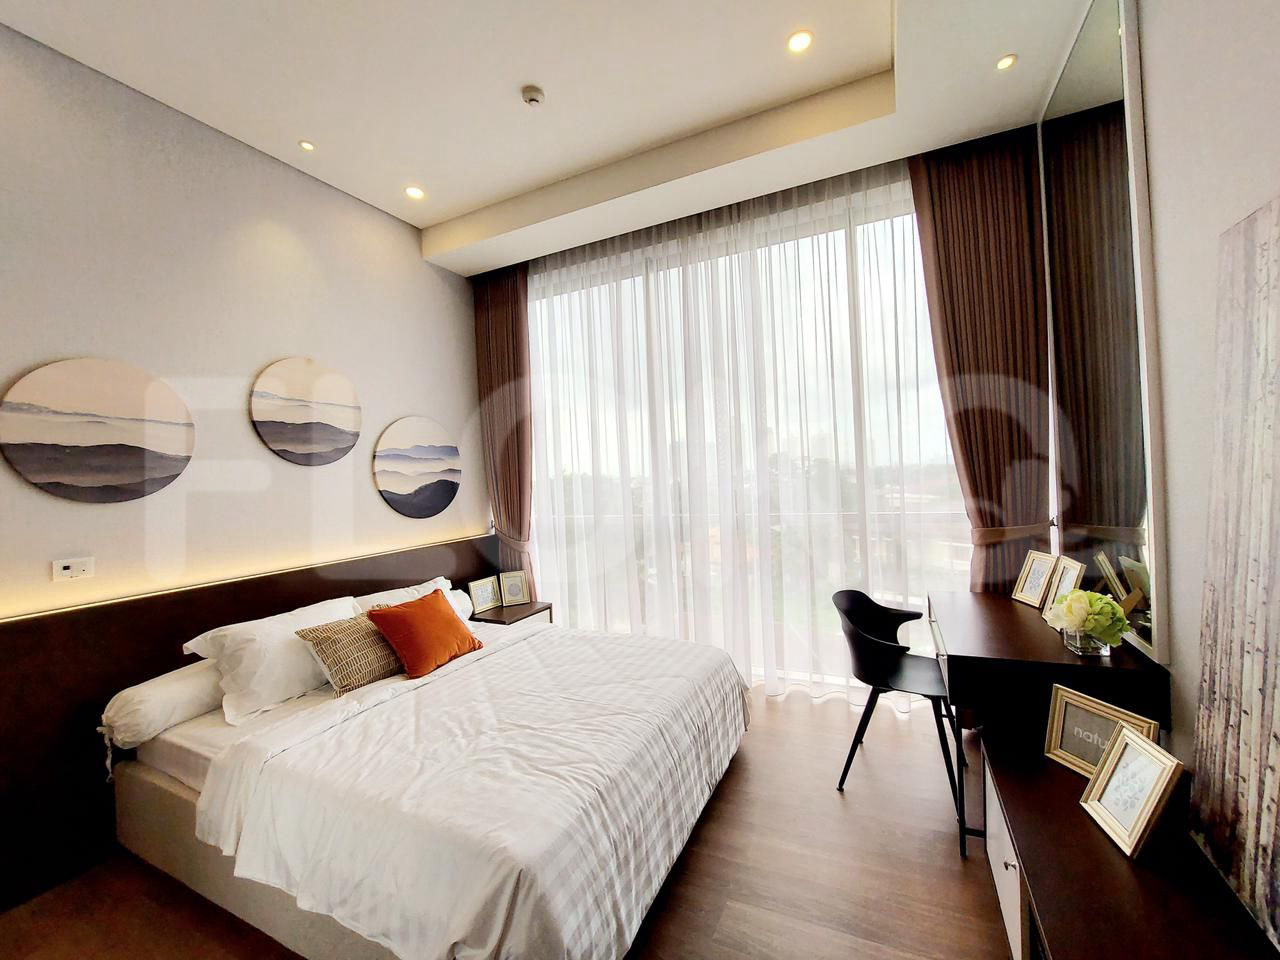 Rent 2BR on 16th Floor, Pay Yearly, The Pakubuwono Spring